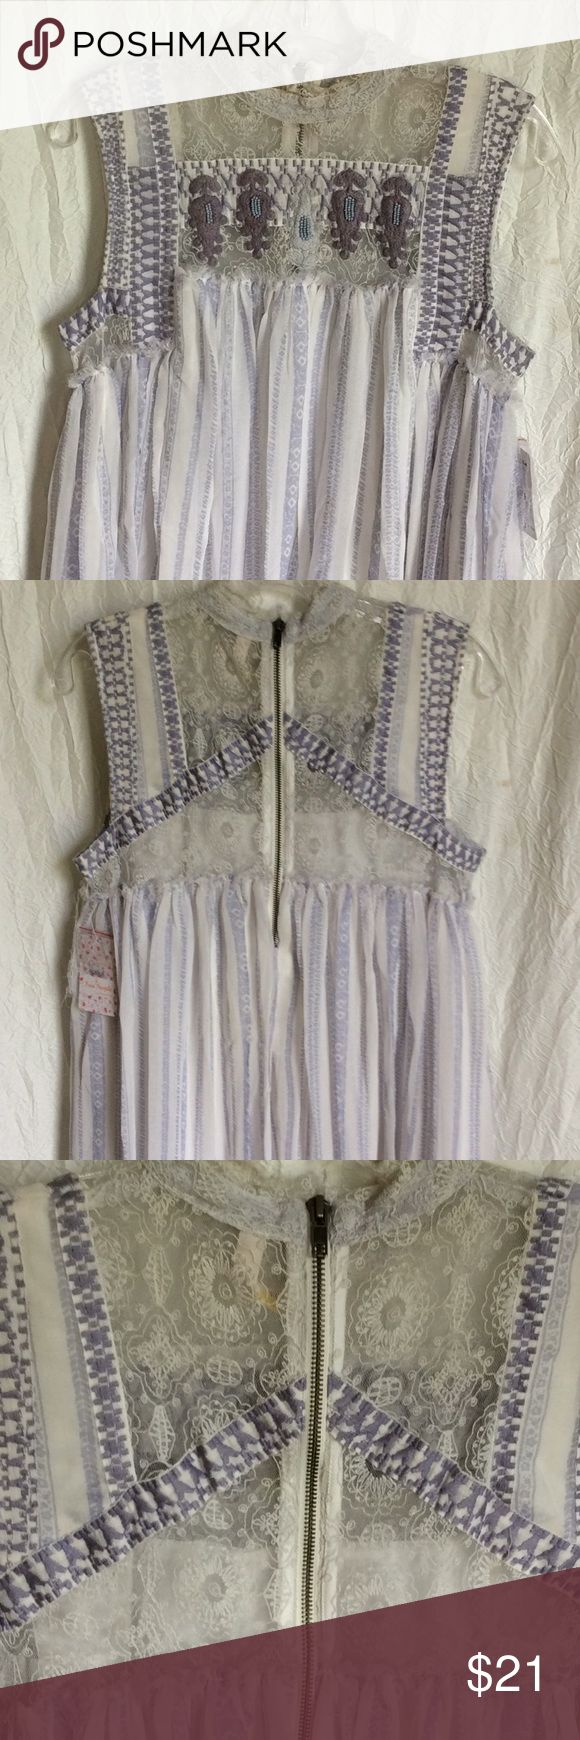 "Free People Penny Georgette Babylon Dress Sz M Free People Penny Georgette Babylon Dress.  Hard to get a picture of how free flowing the dress is.  Shades of lavender embroidery and beading on lace backed bodice.  Industrial metal zipper in back just makes the delicate look even more obvious.  Seams are sewn on outside with unfinished/raveling edges.  Item used in photo shoot and a few spots showed up (pics). Makeup on neck/slight spot on front/sticky tape on bottom Dress ress is 34"", right…"